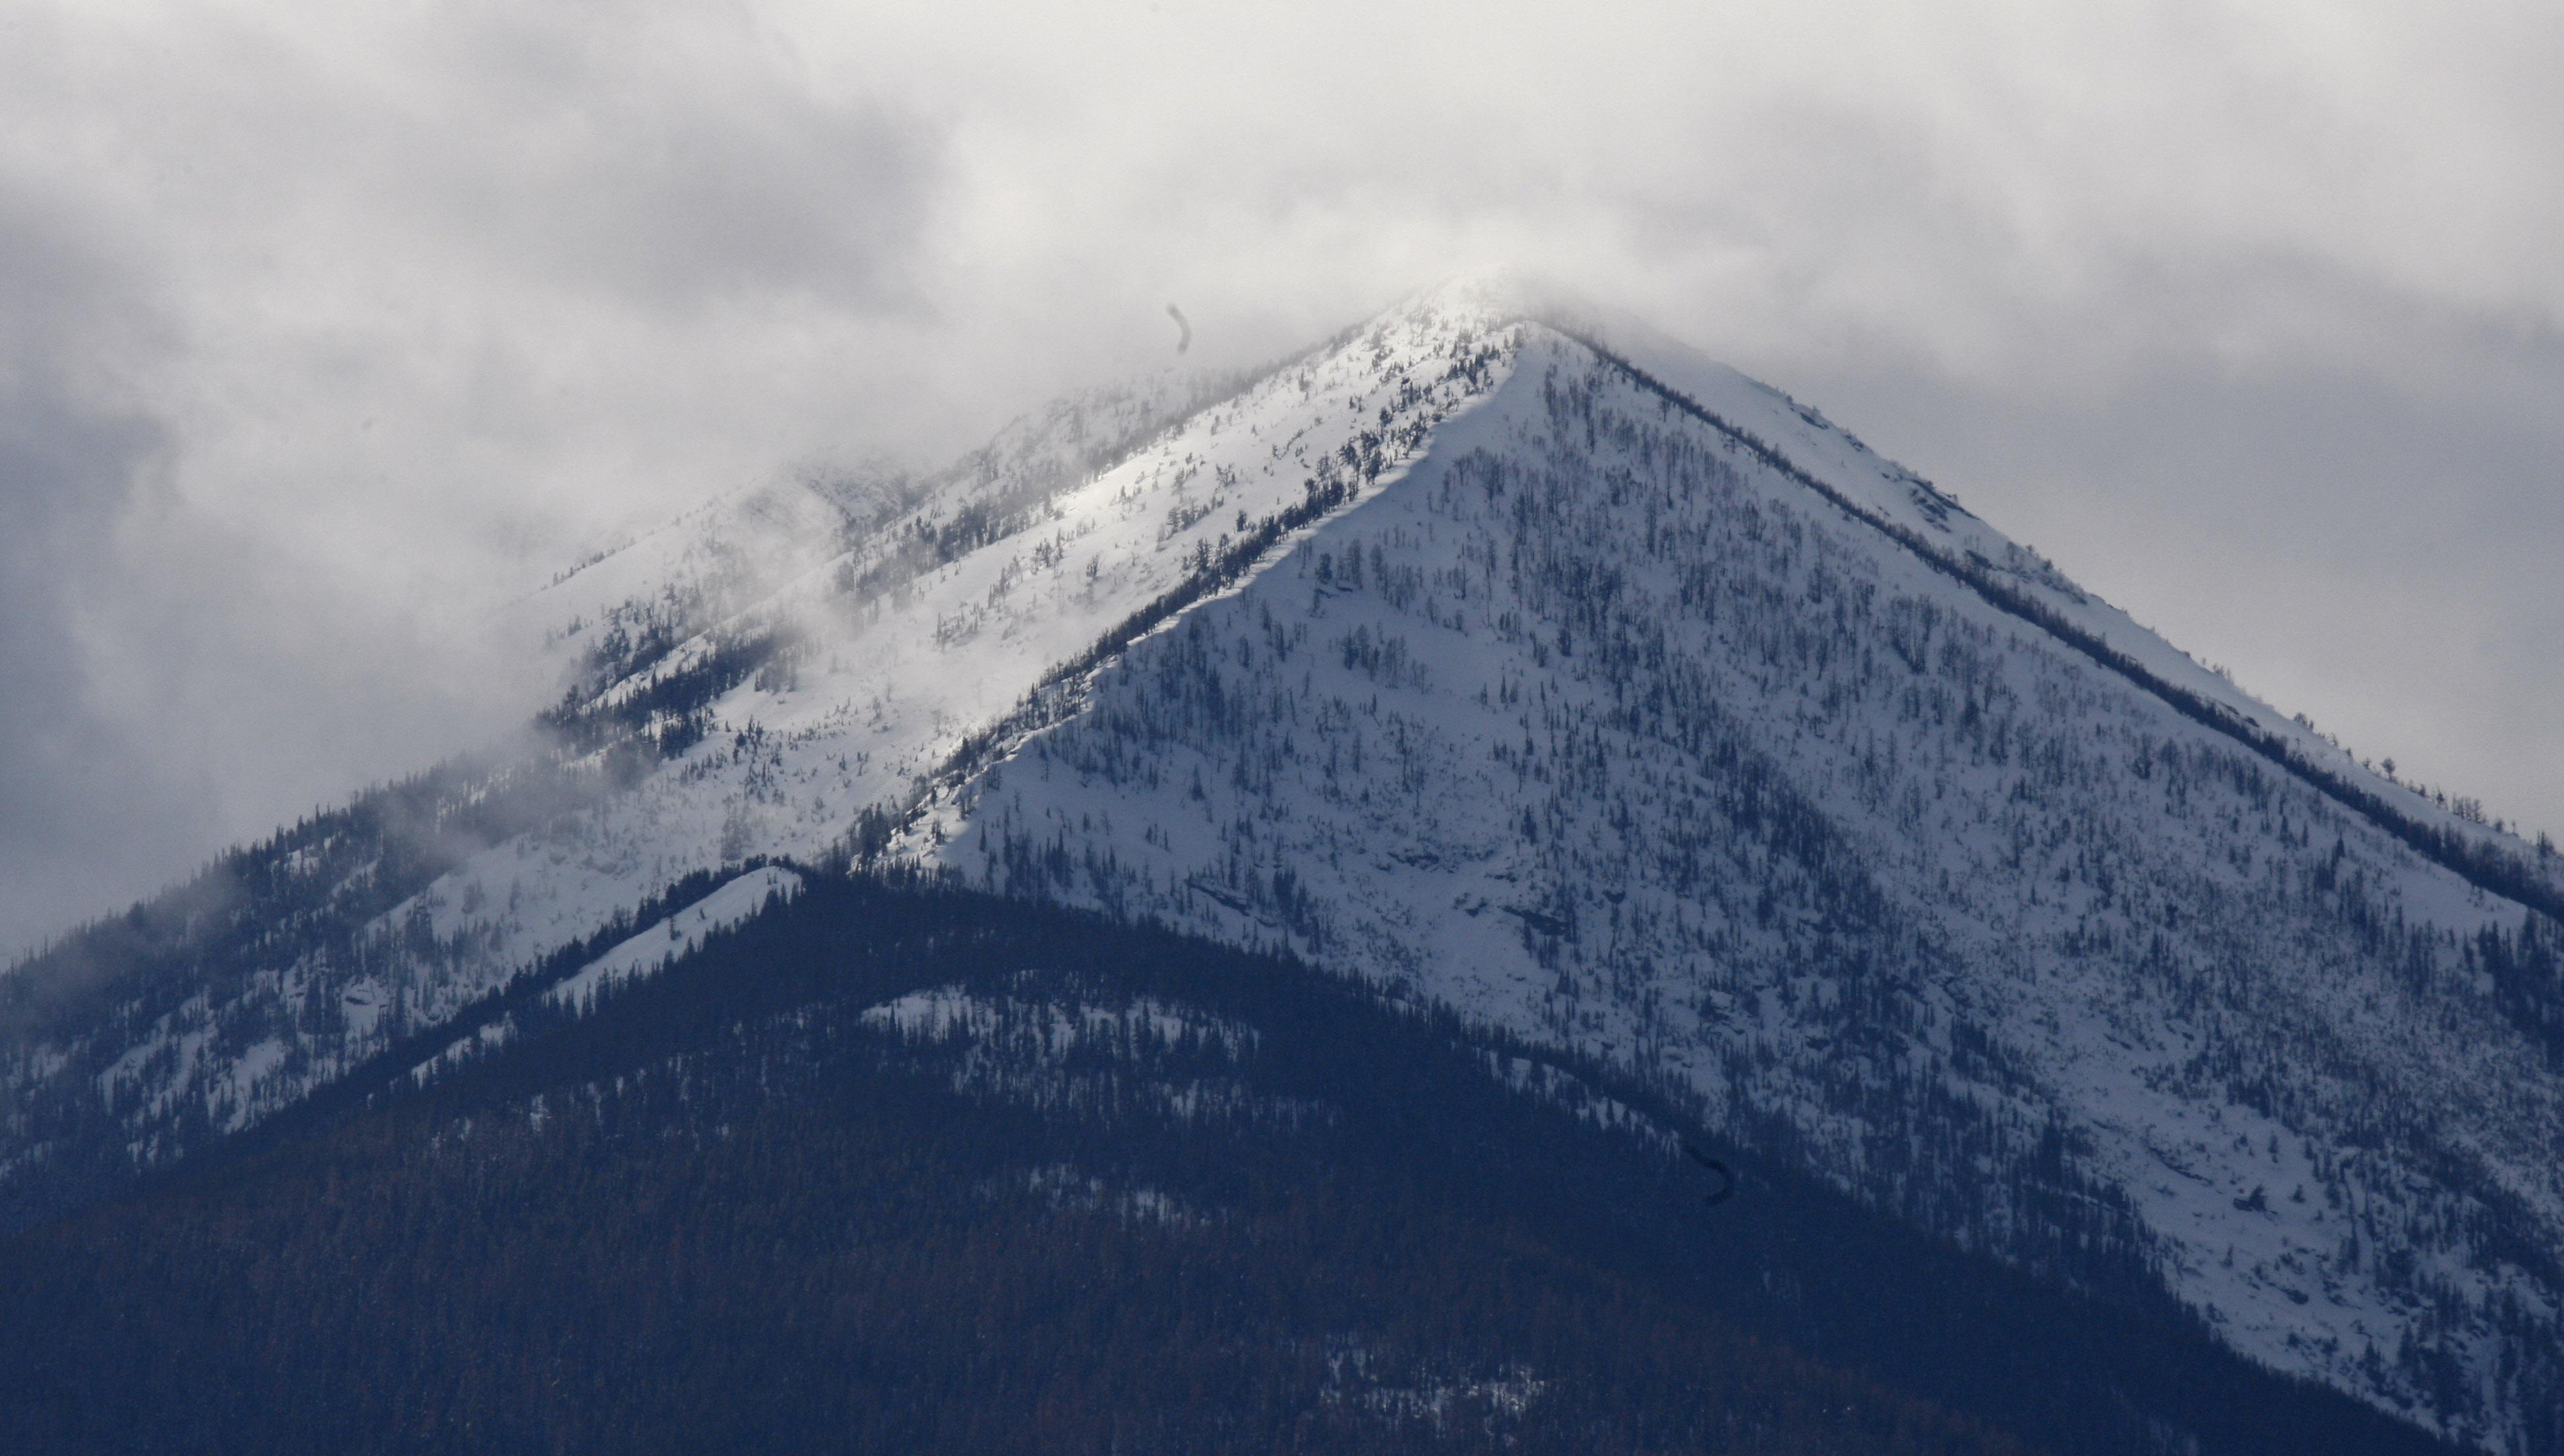 The Snowcapped Cabinet Mountains Tower Over The Lush Kootenai River Valley  On Feb. 17,